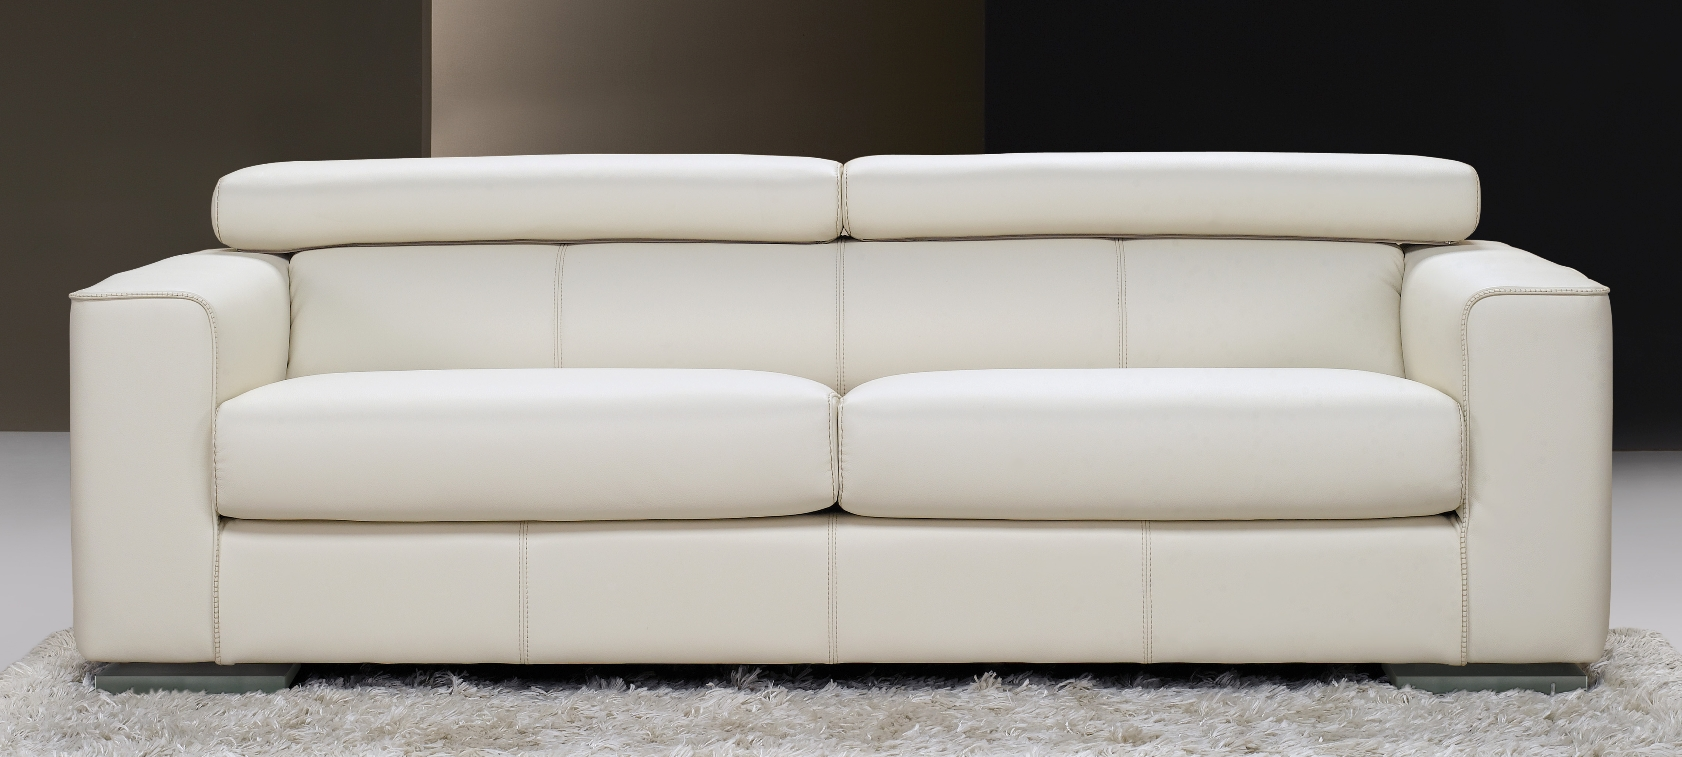 Luxurious leather sofas perfect elegance in your home for Modern leather furniture